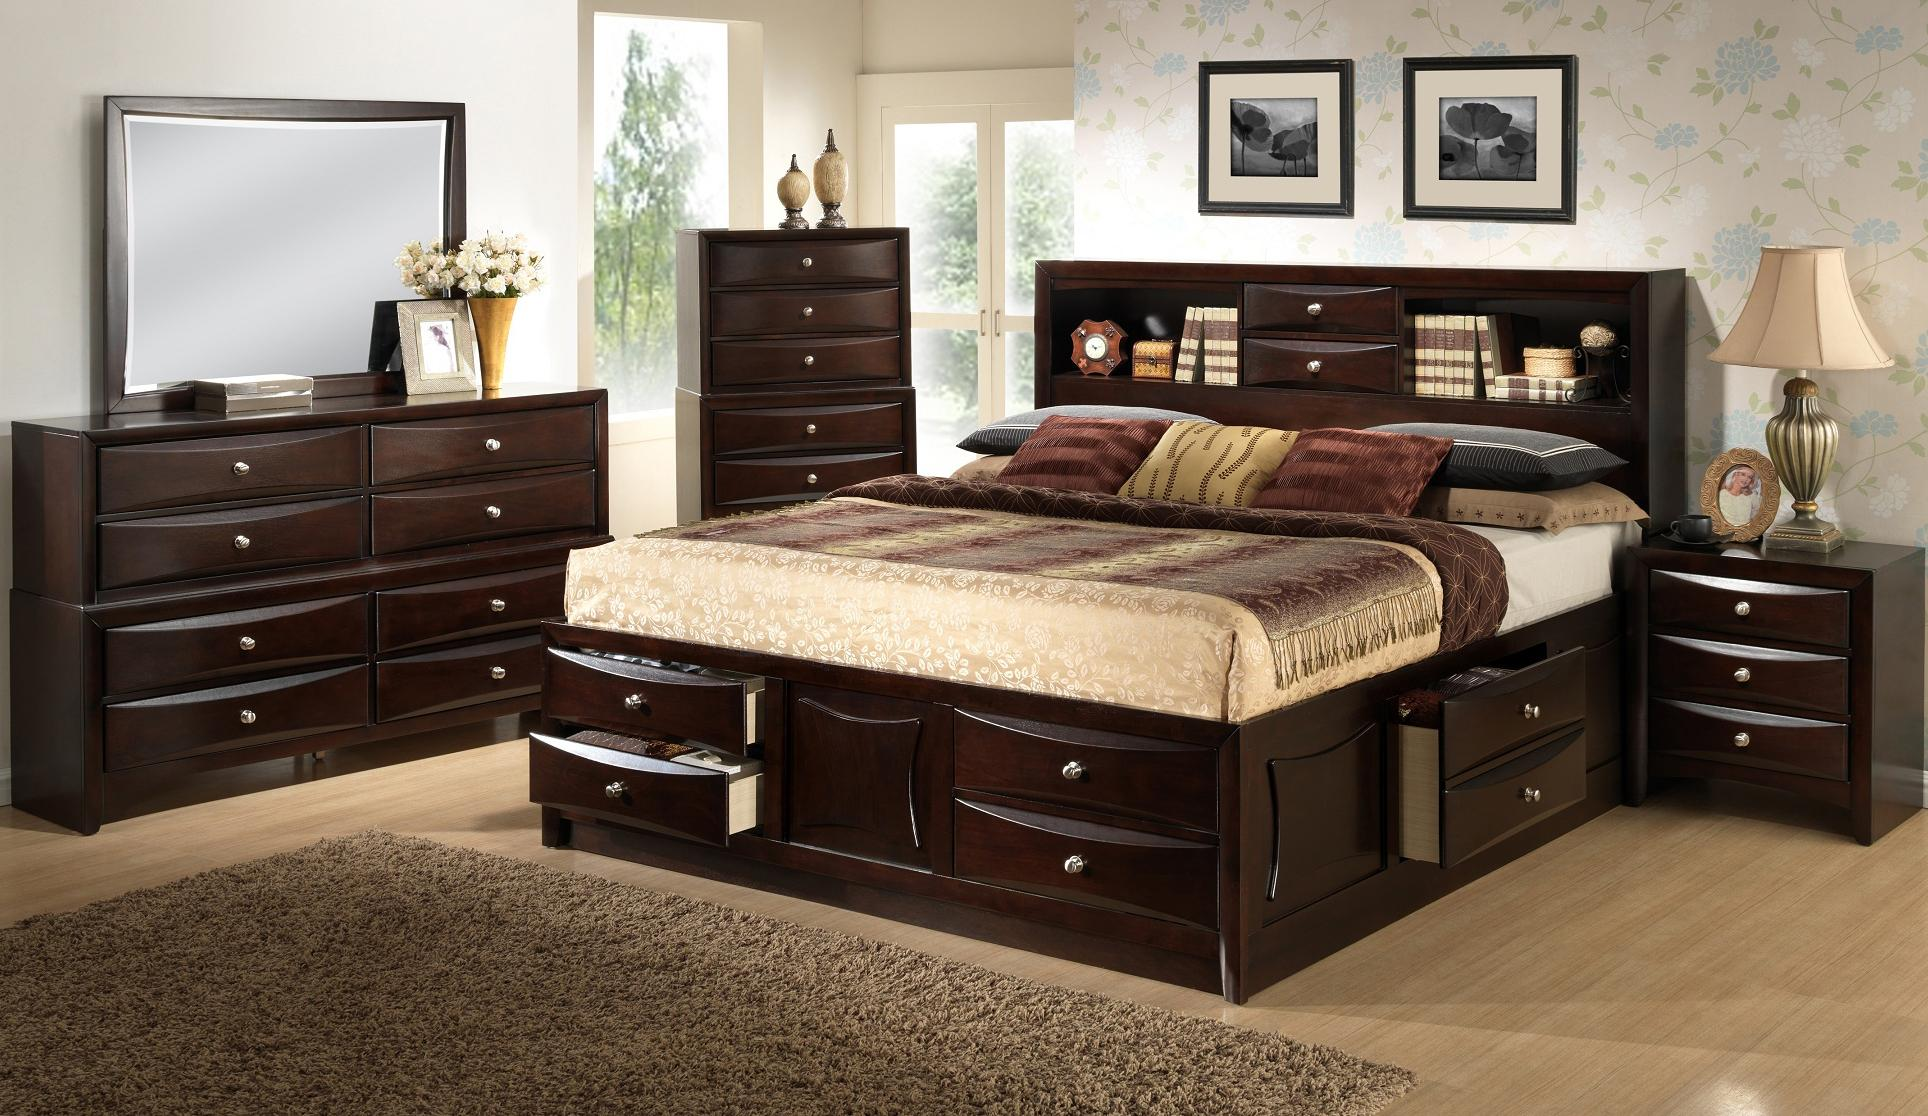 Lifestyle c0172 king california king storage bed w - Bookcase headboard king bedroom set ...